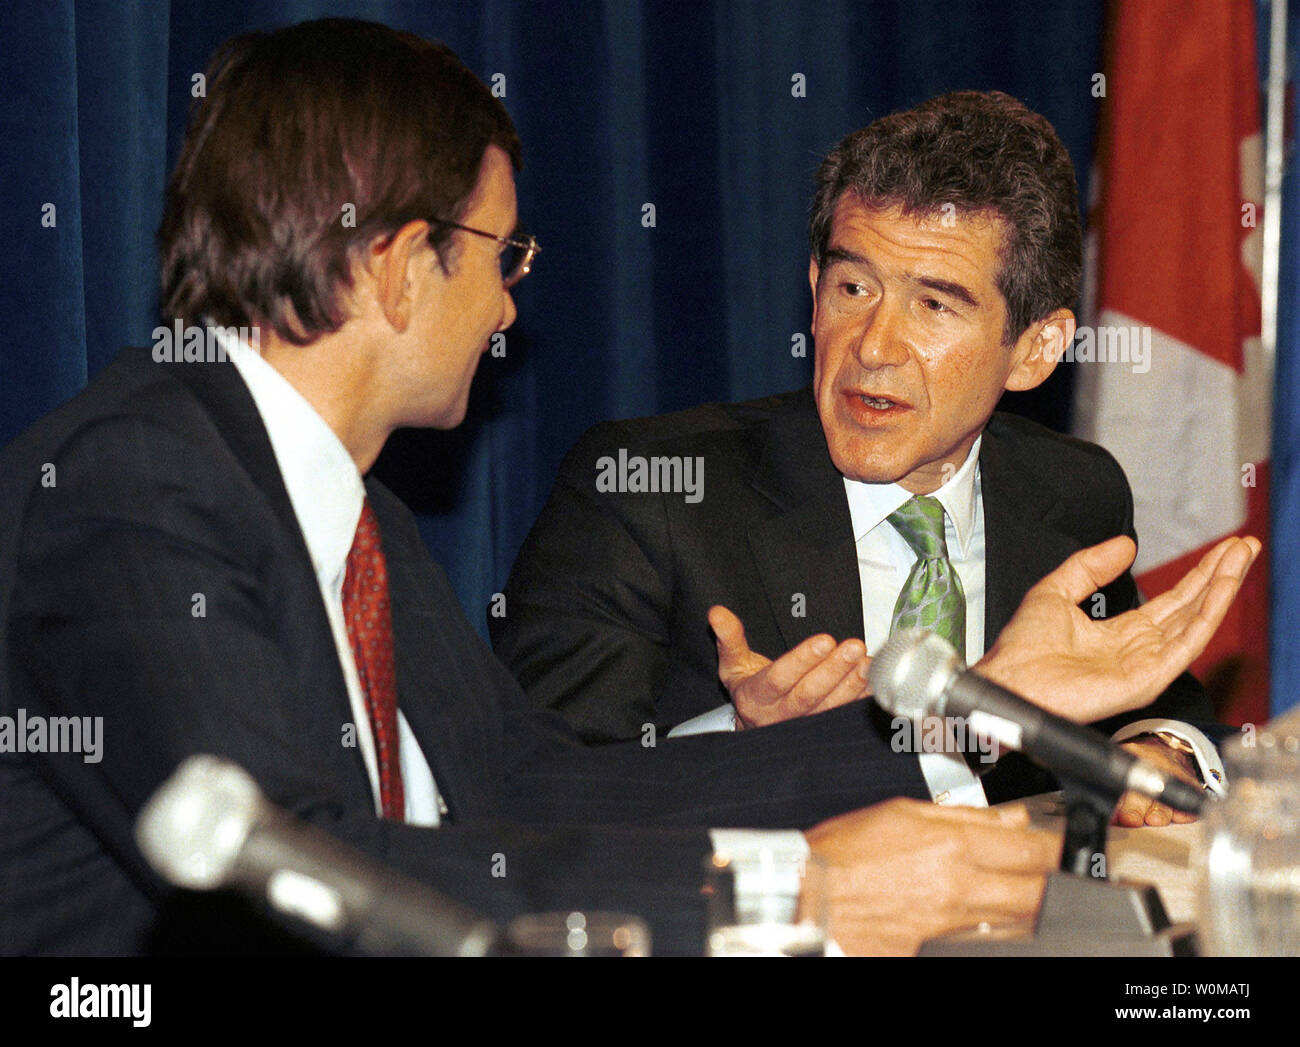 CEO of BP Lord John Browne (R), pictured in a June 13, 2000 file photo in Calgary, resigned after a judge allowed a newspaper to publish allegations that Browne misused company resources in London on May 2, 2007.  (UPI Photo/Heinz Ruckemann/FILES) - Stock Image